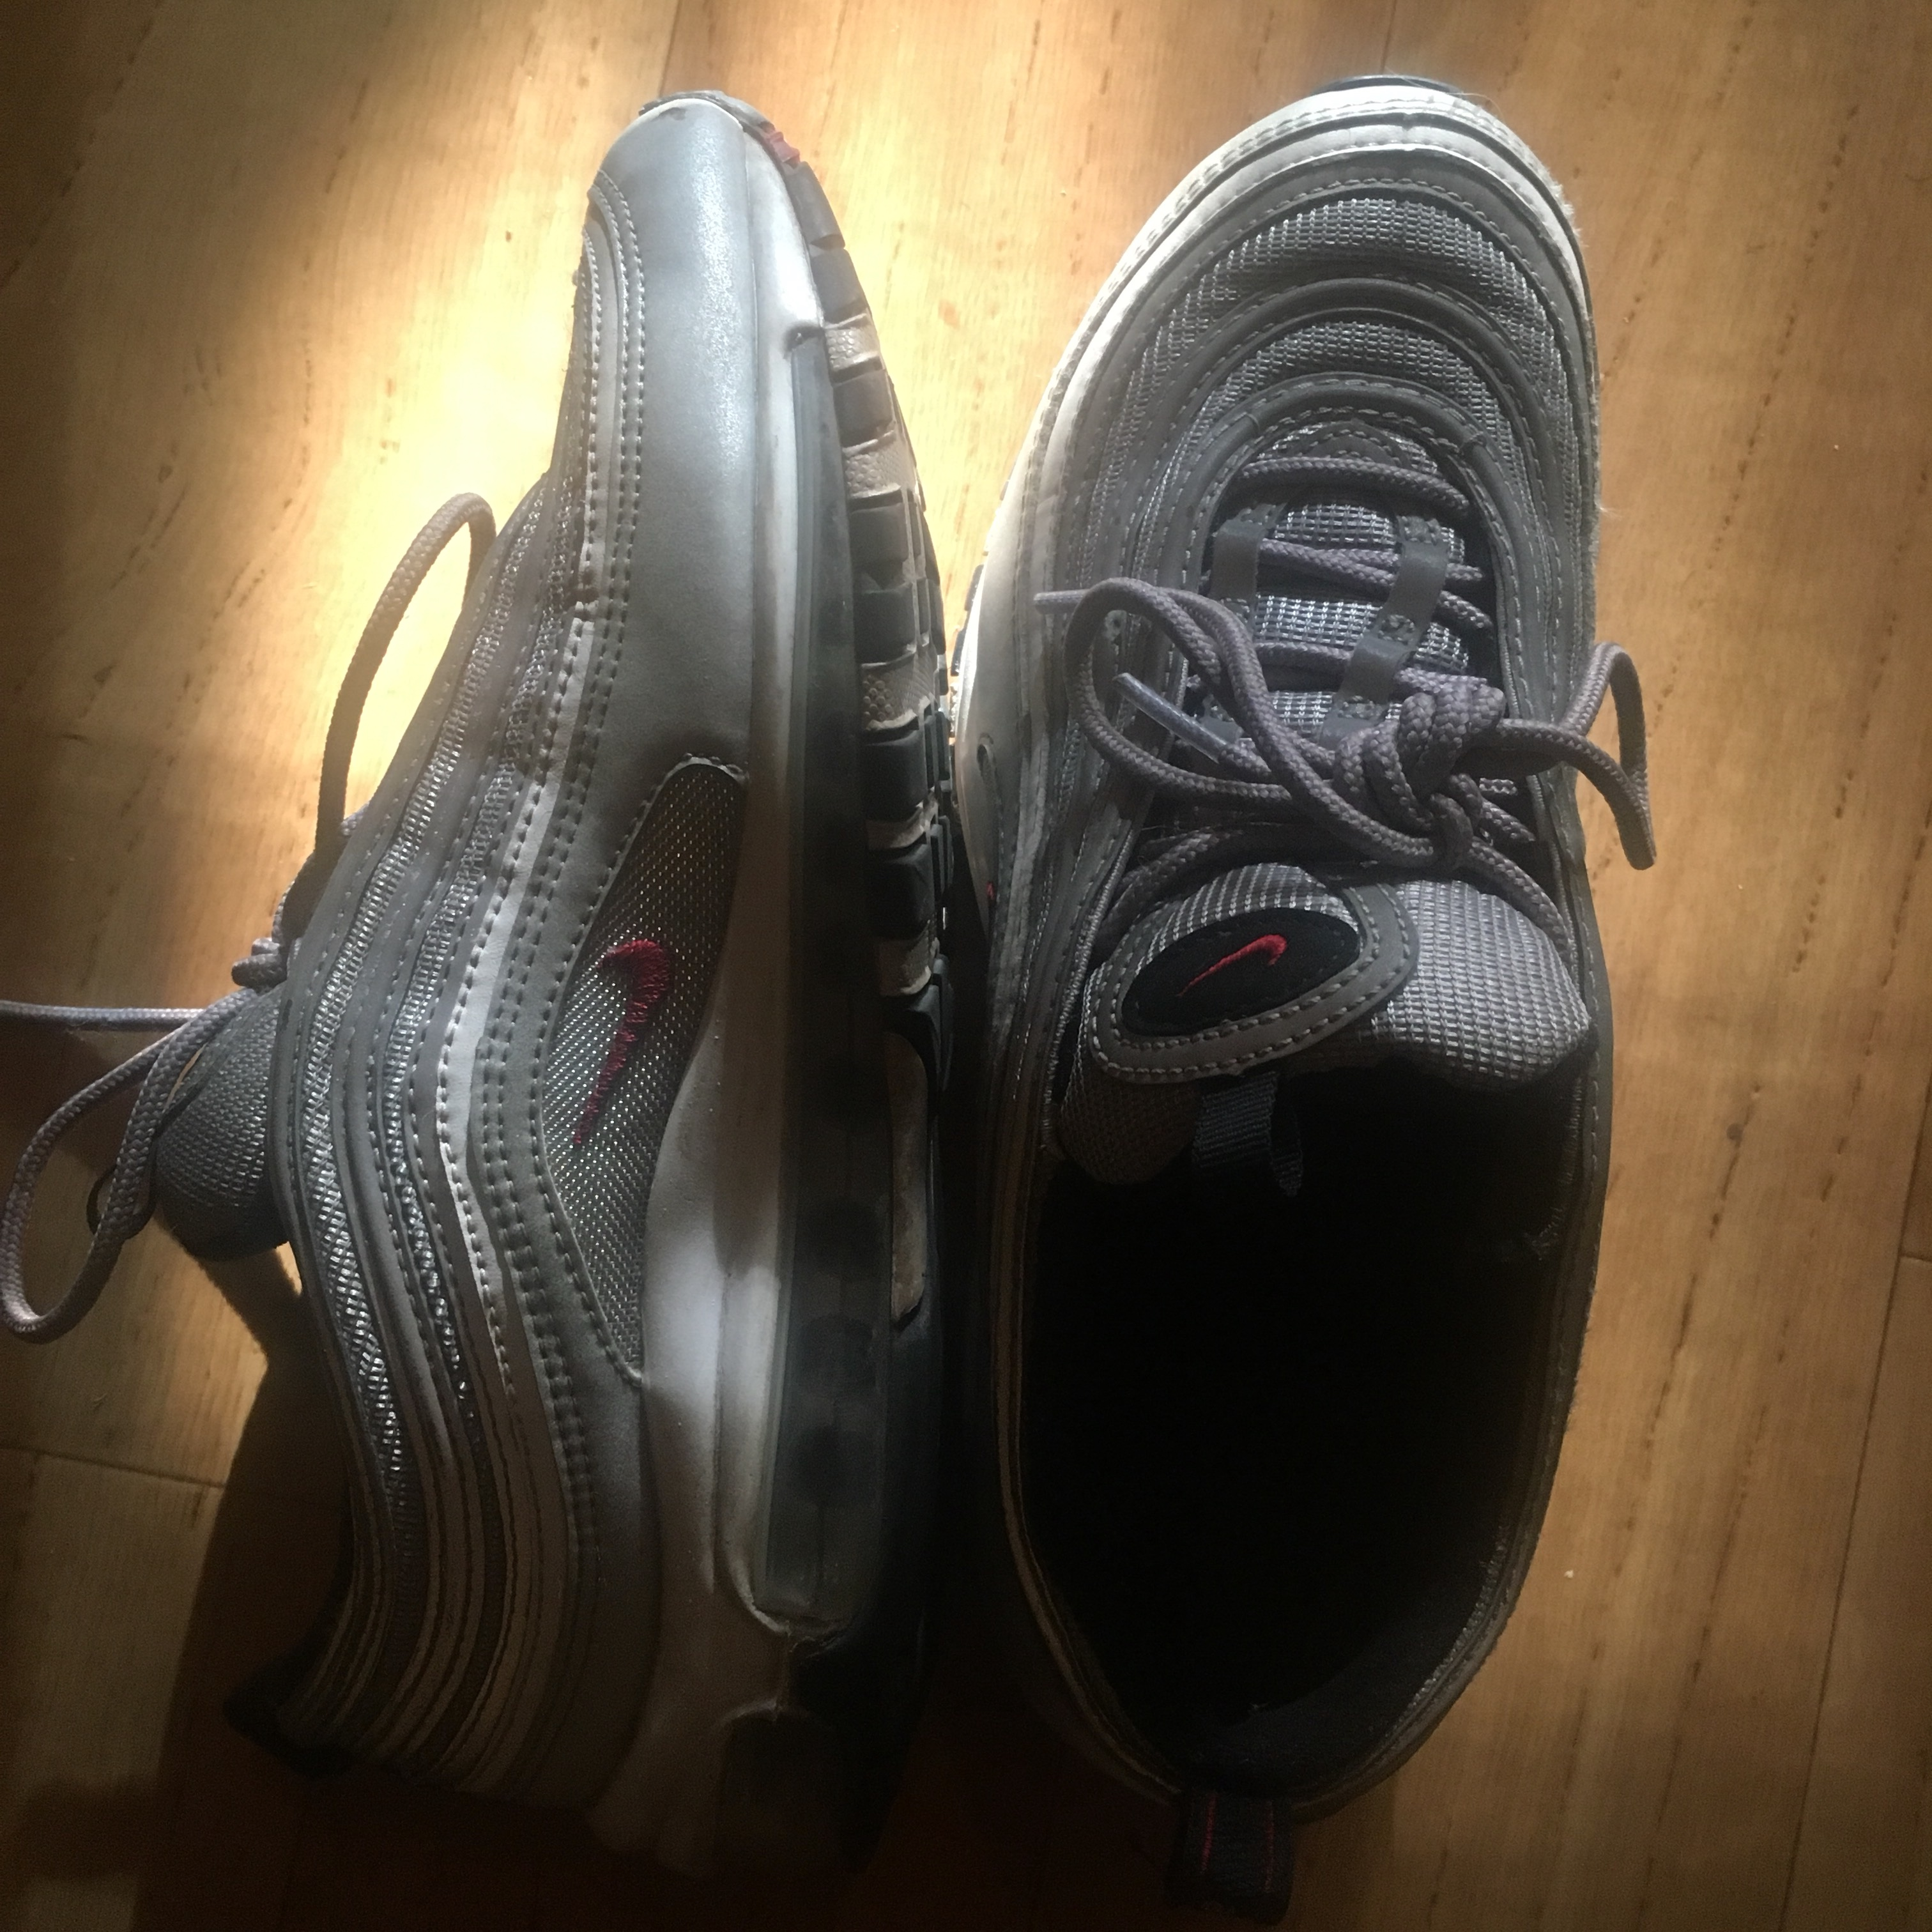 UK Size 5.5 Nike Air Max 97 Ultra with silver, Depop